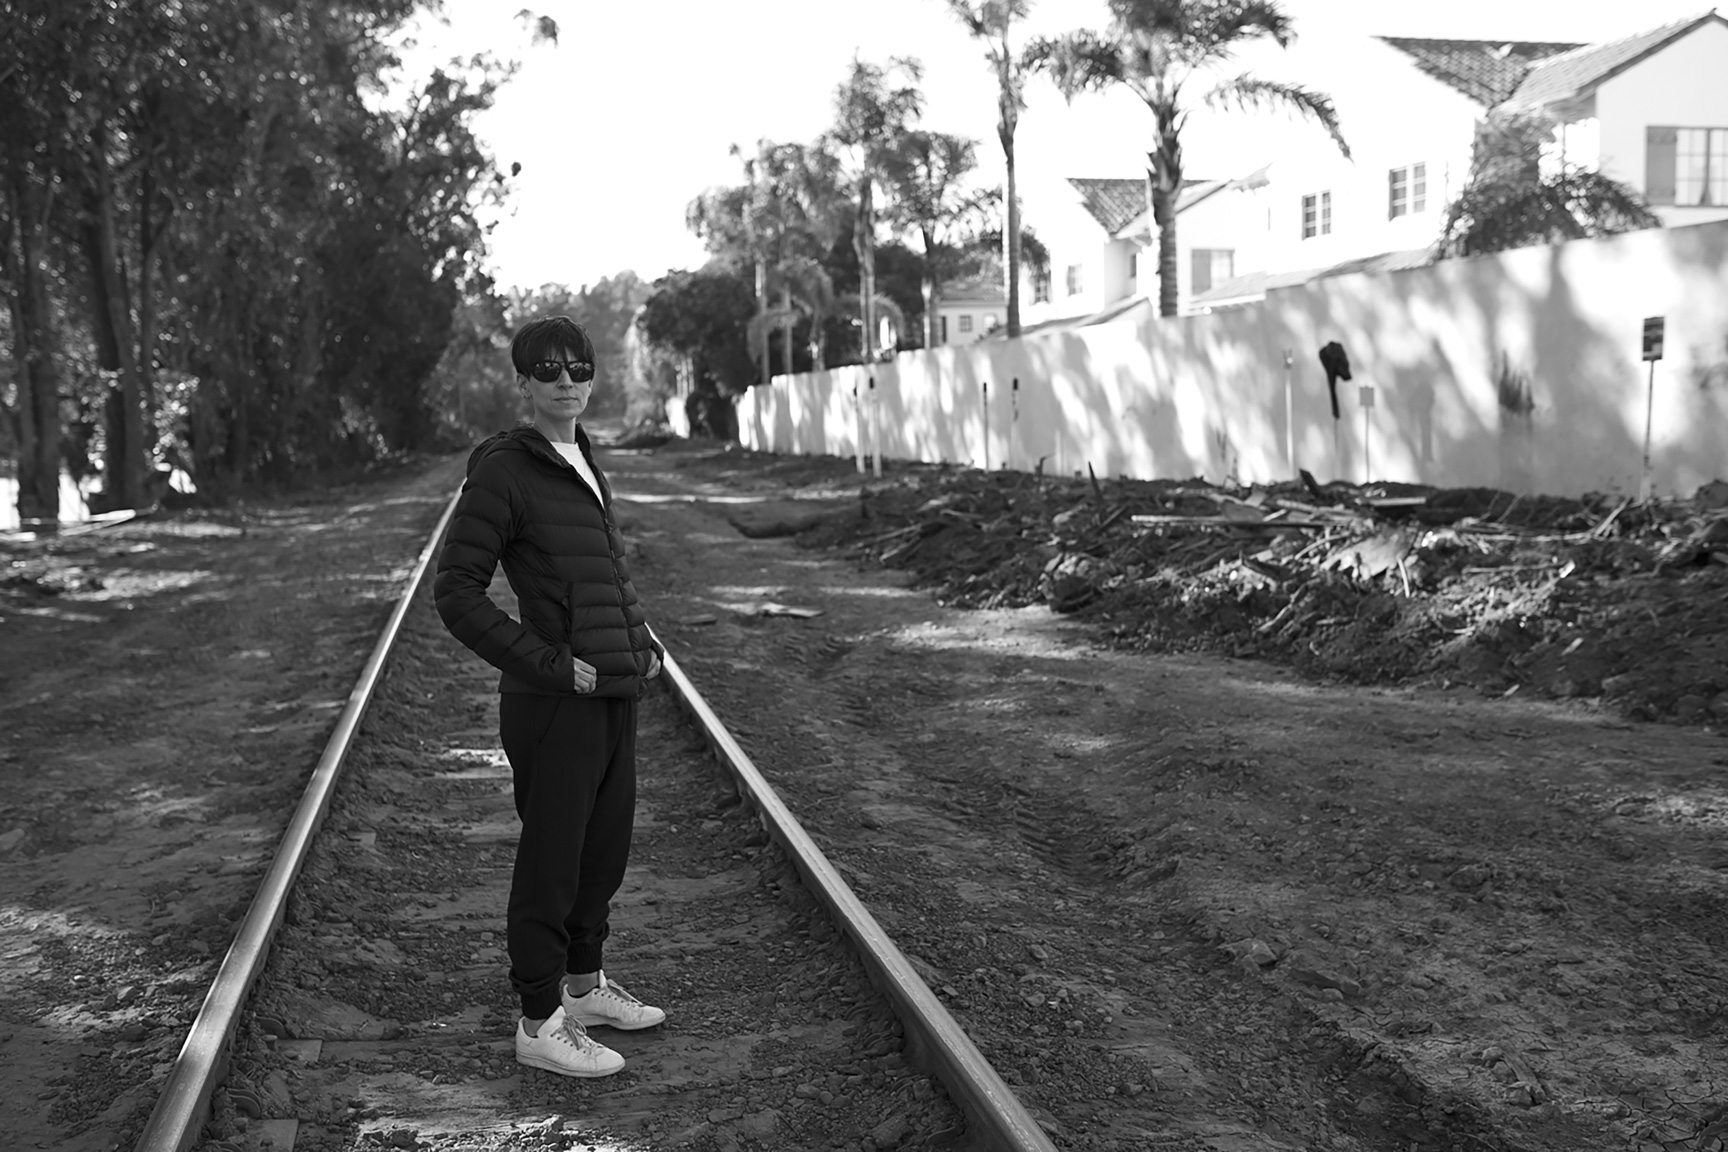 Lisa Field captured me on a walk on the train tracks in Montecito weeks after the mudslides.